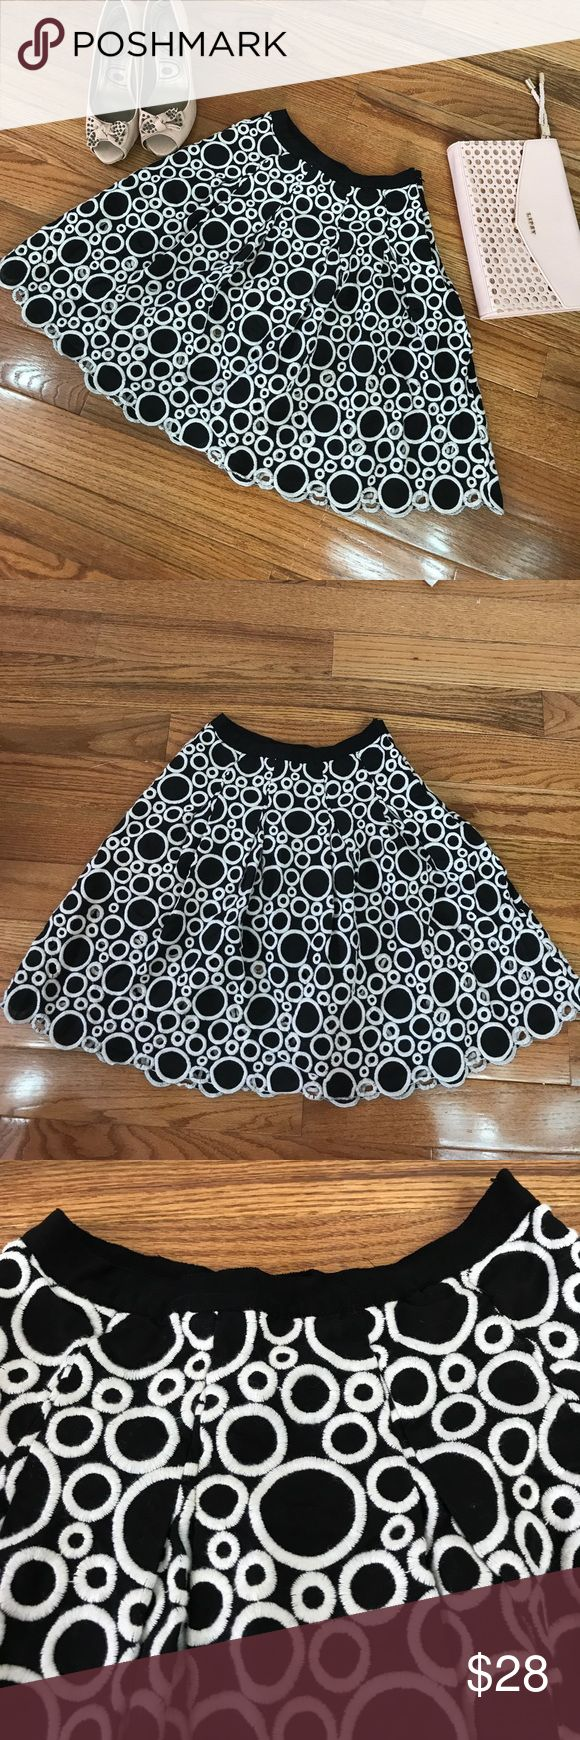 """Ann Taylor Circle Skirt sz 2 Ann Taylor Skirt Black with White Circles. Flirty and feminine and perfect for the summer. 100% Cotton.  Length is 18.5"""". Waist is 26"""" Ann Taylor Skirts Circle & Skater"""